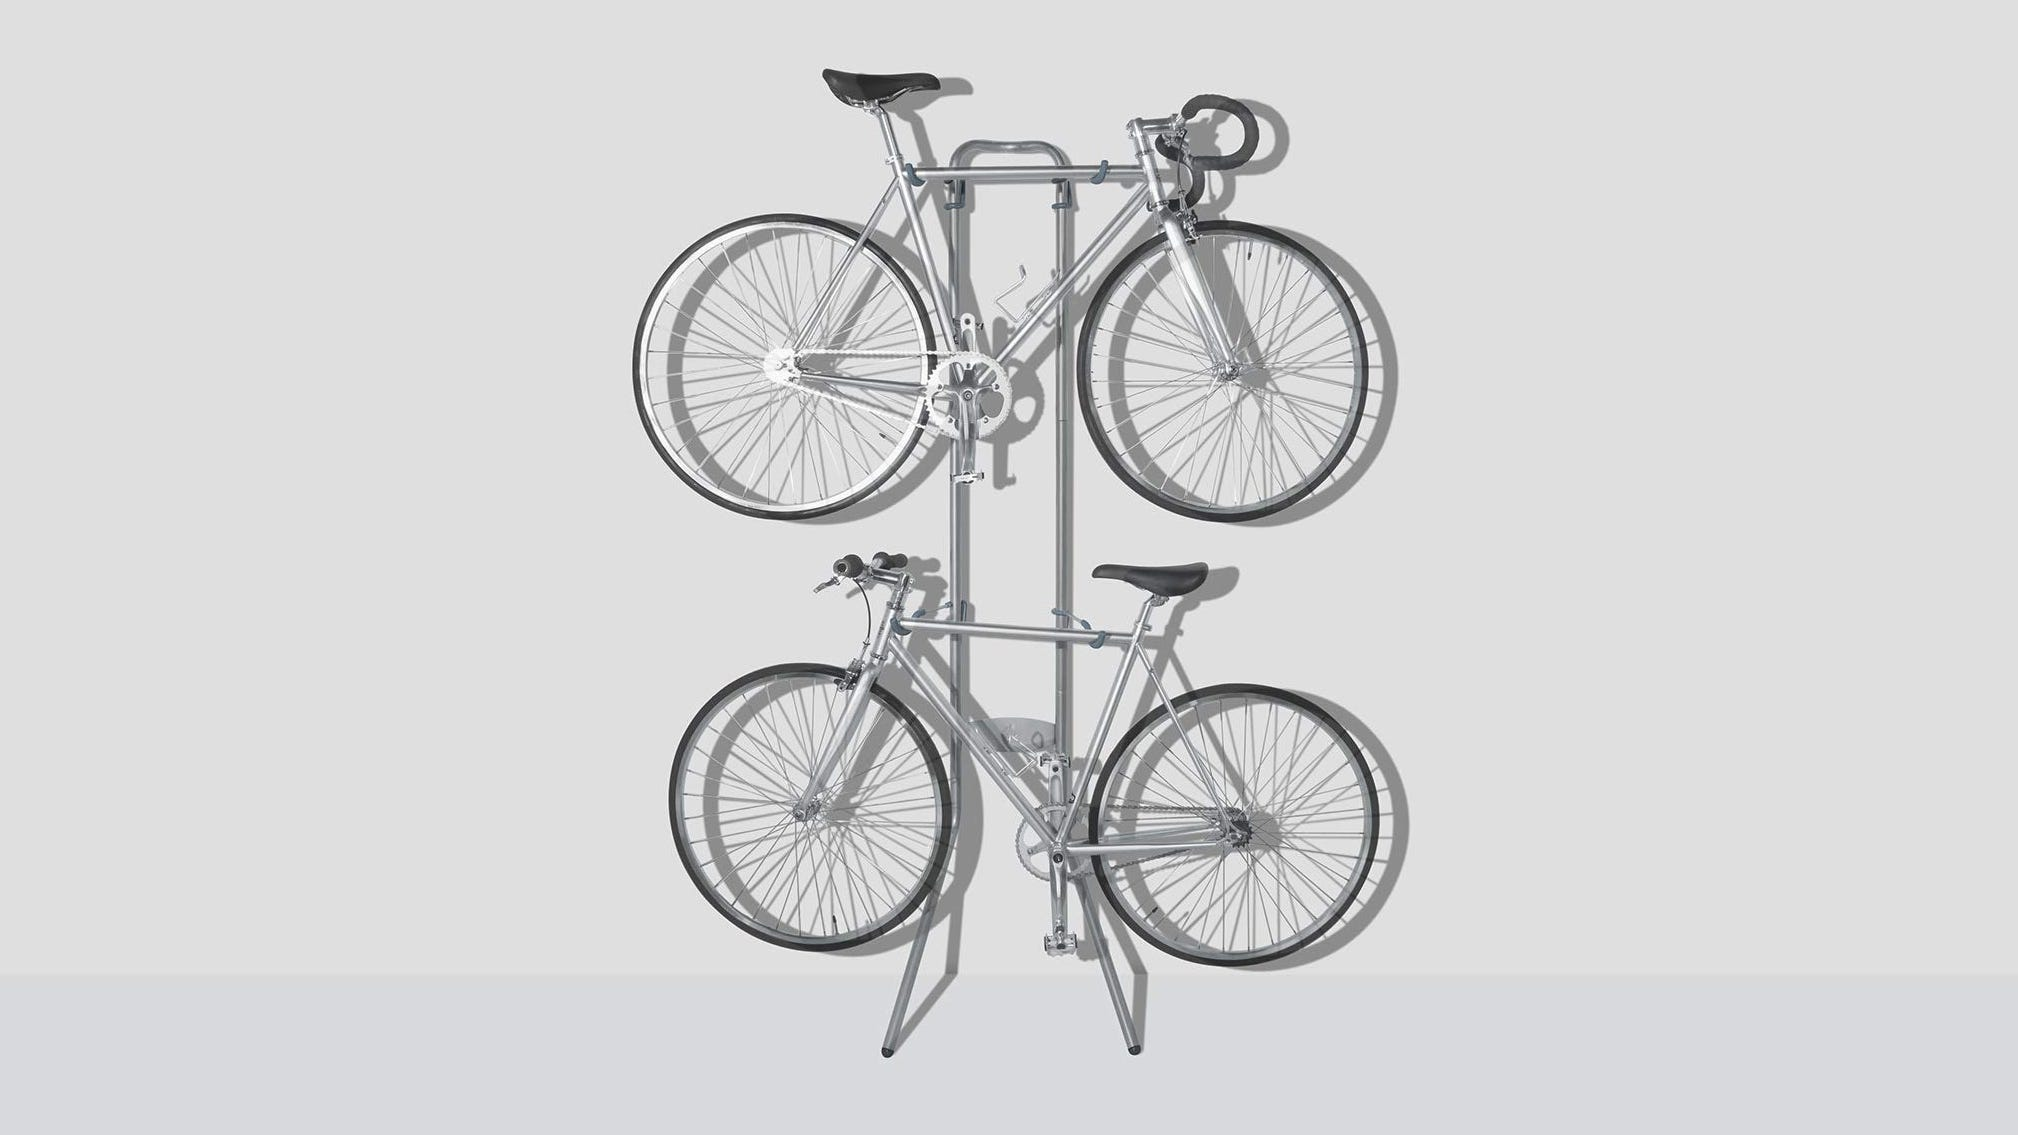 The Delta Cycle Michelangelo Bike Rack standing against a wall holding two bicycles.